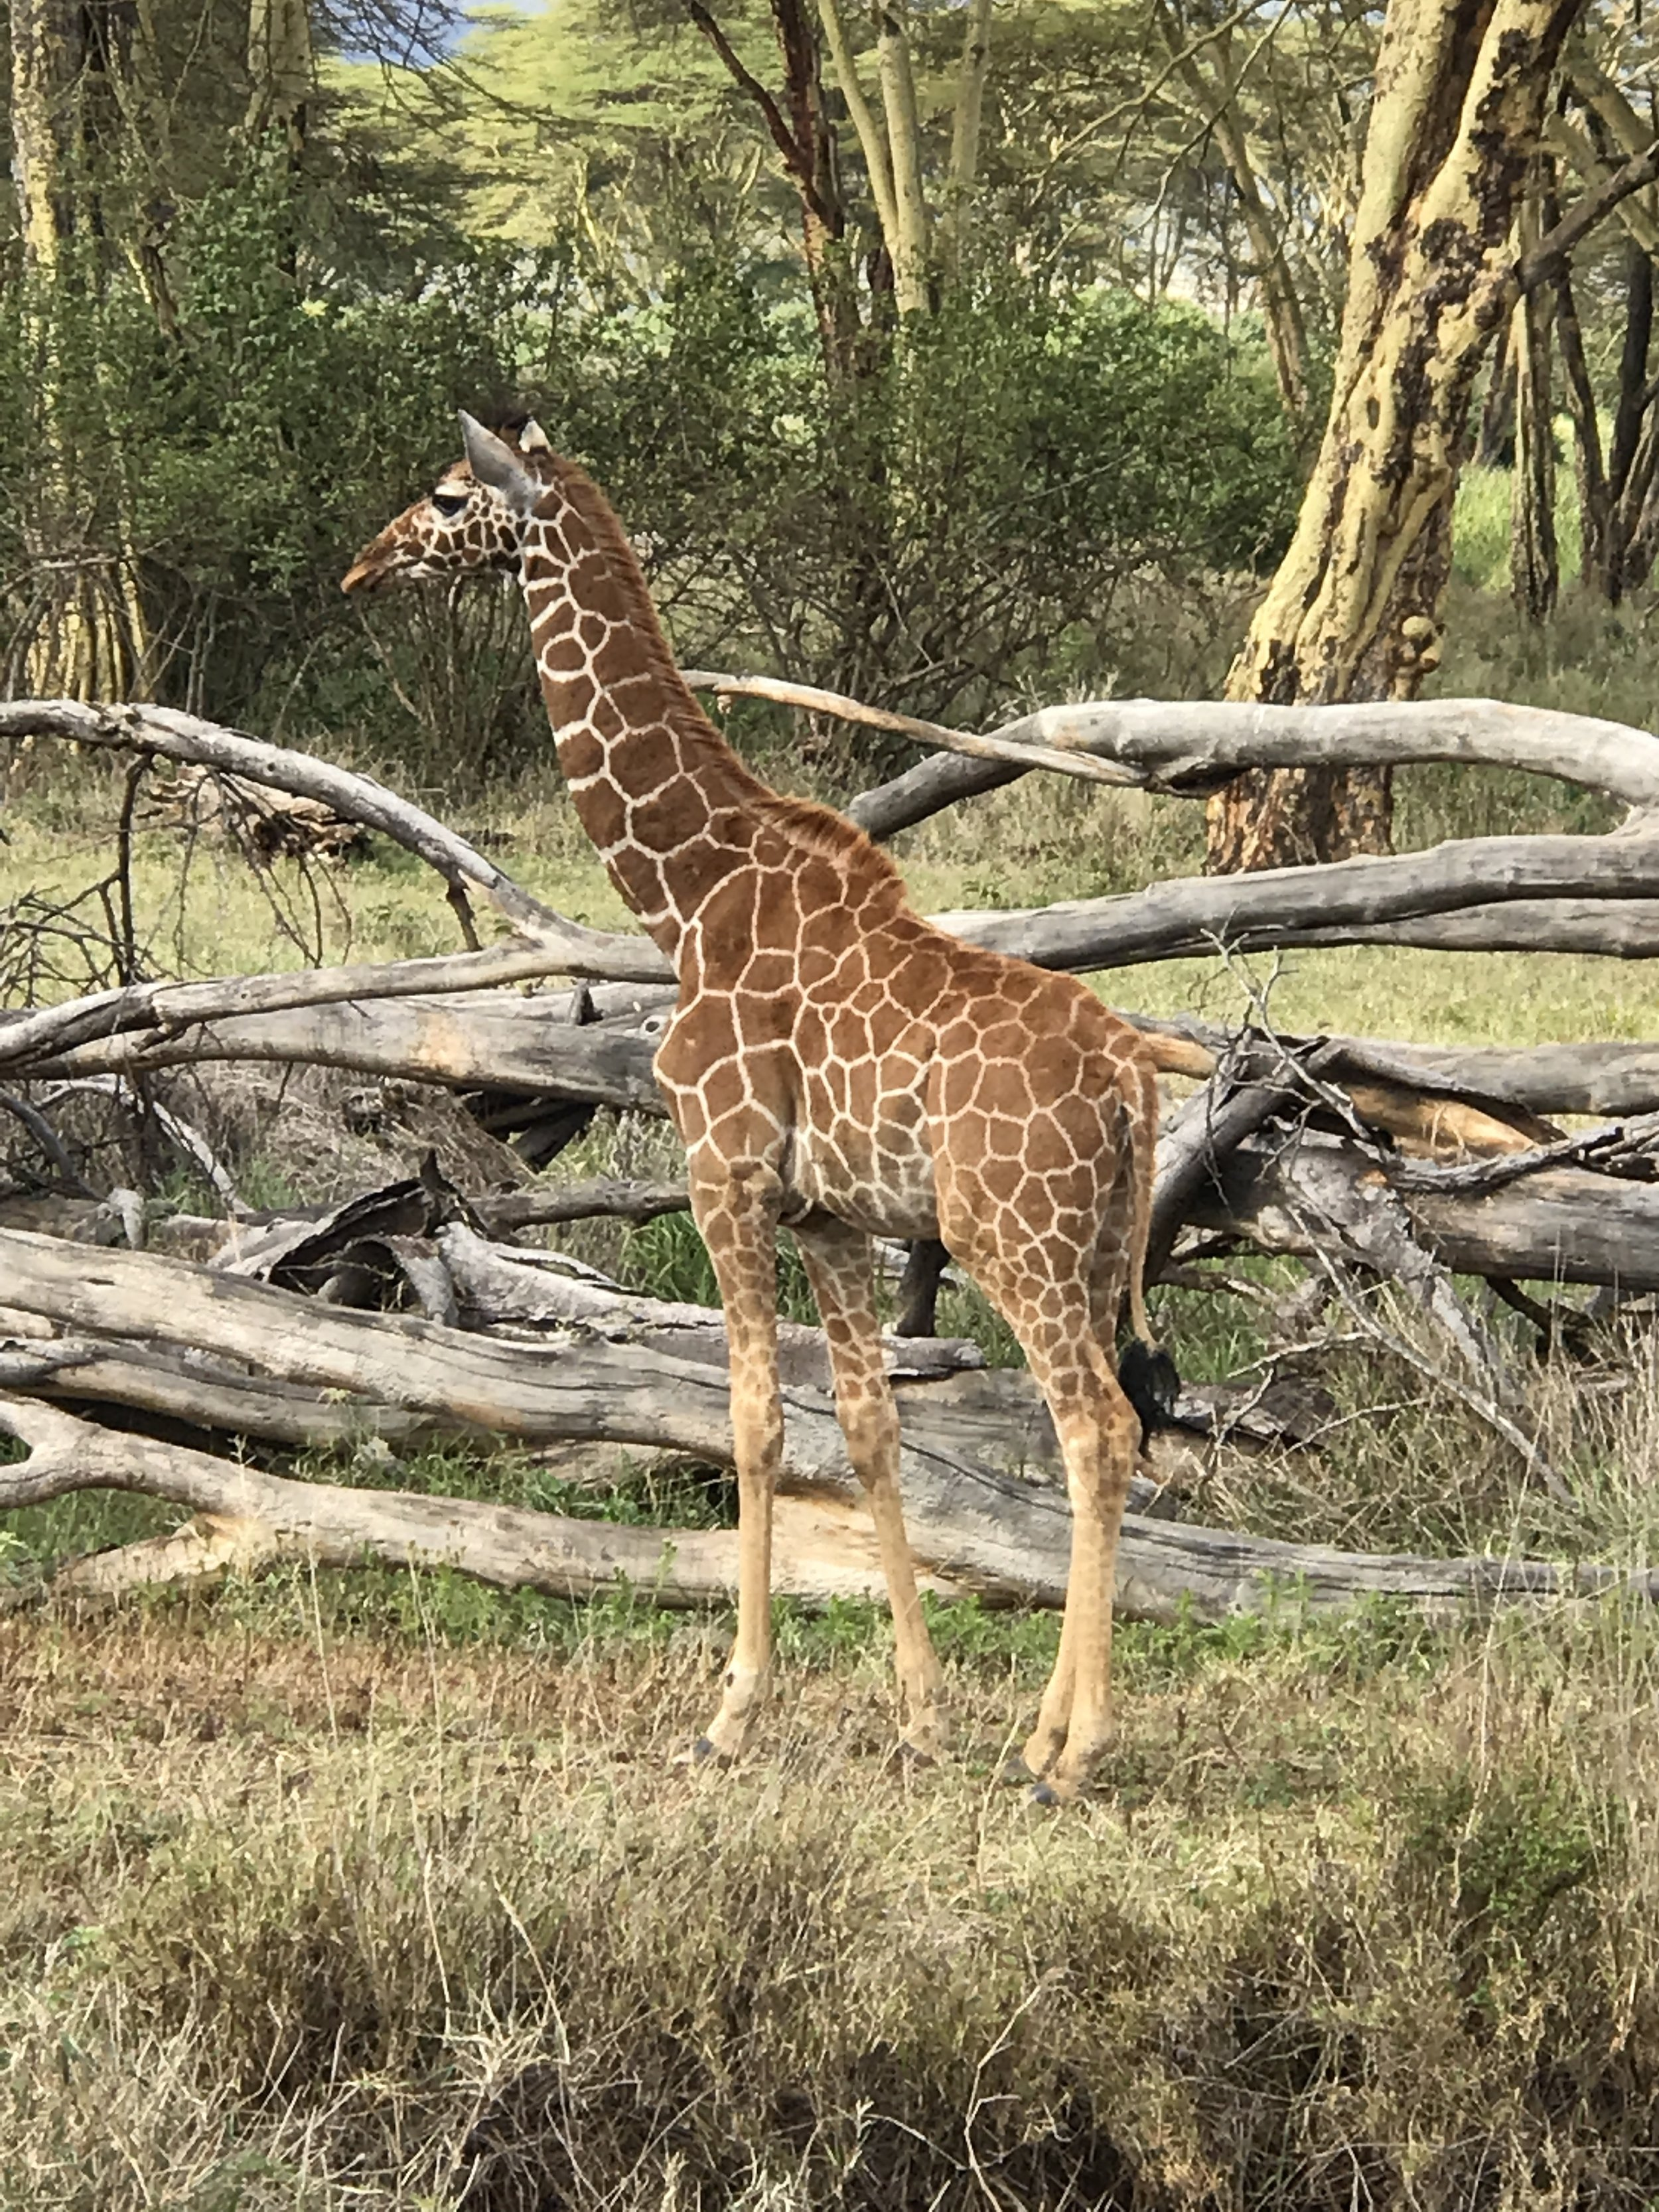 A baby giraffe on the way to the clinic. We've been told the mother left it about two weeks ago and has not come back. They assure us the baby is safe as this particular area is wired off and the lions can't get to it.